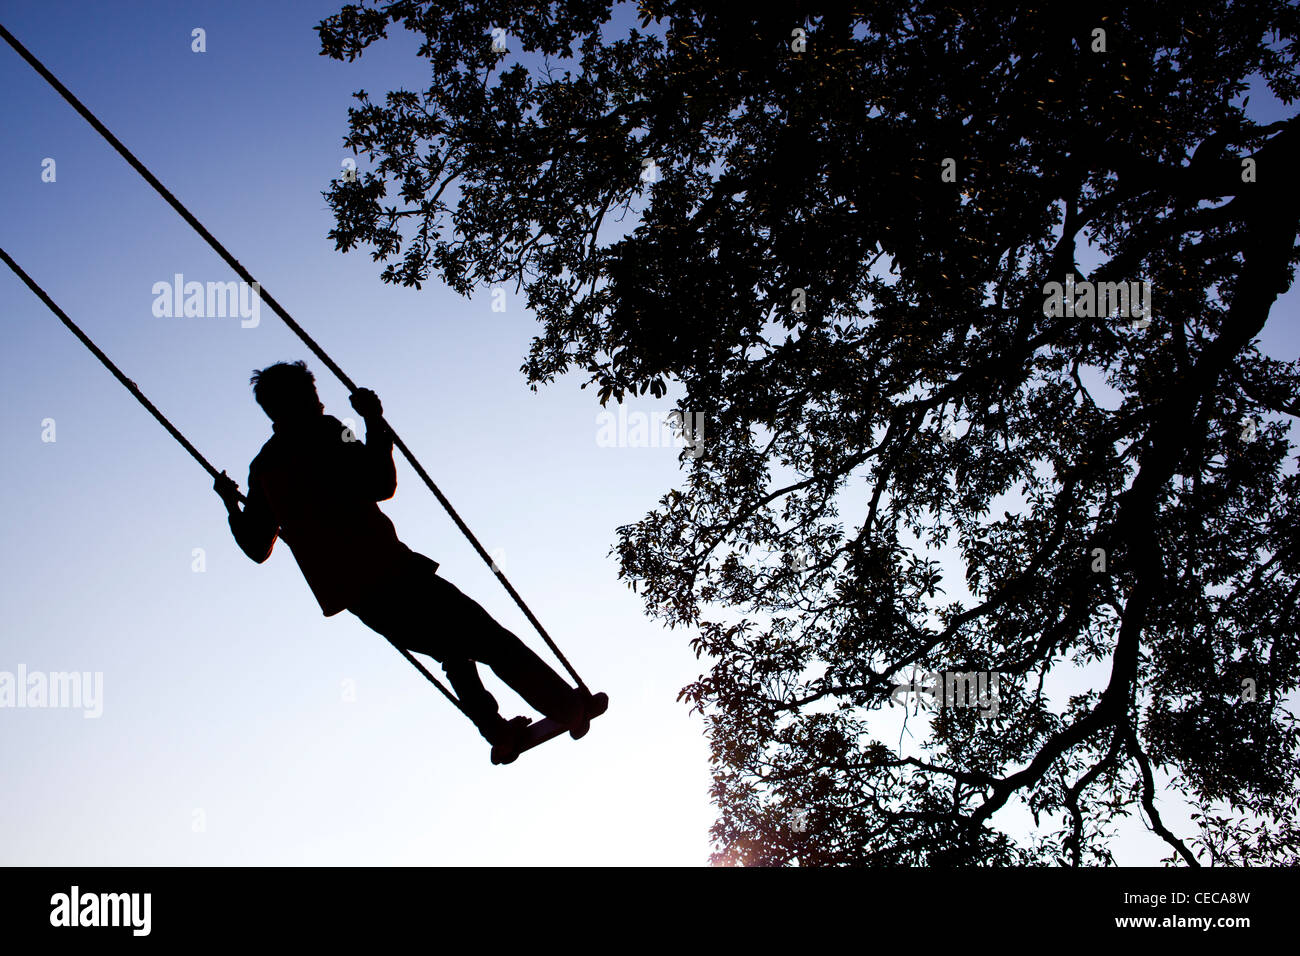 Child on a swing tradition Pokhara Nepal Asia - Stock Image